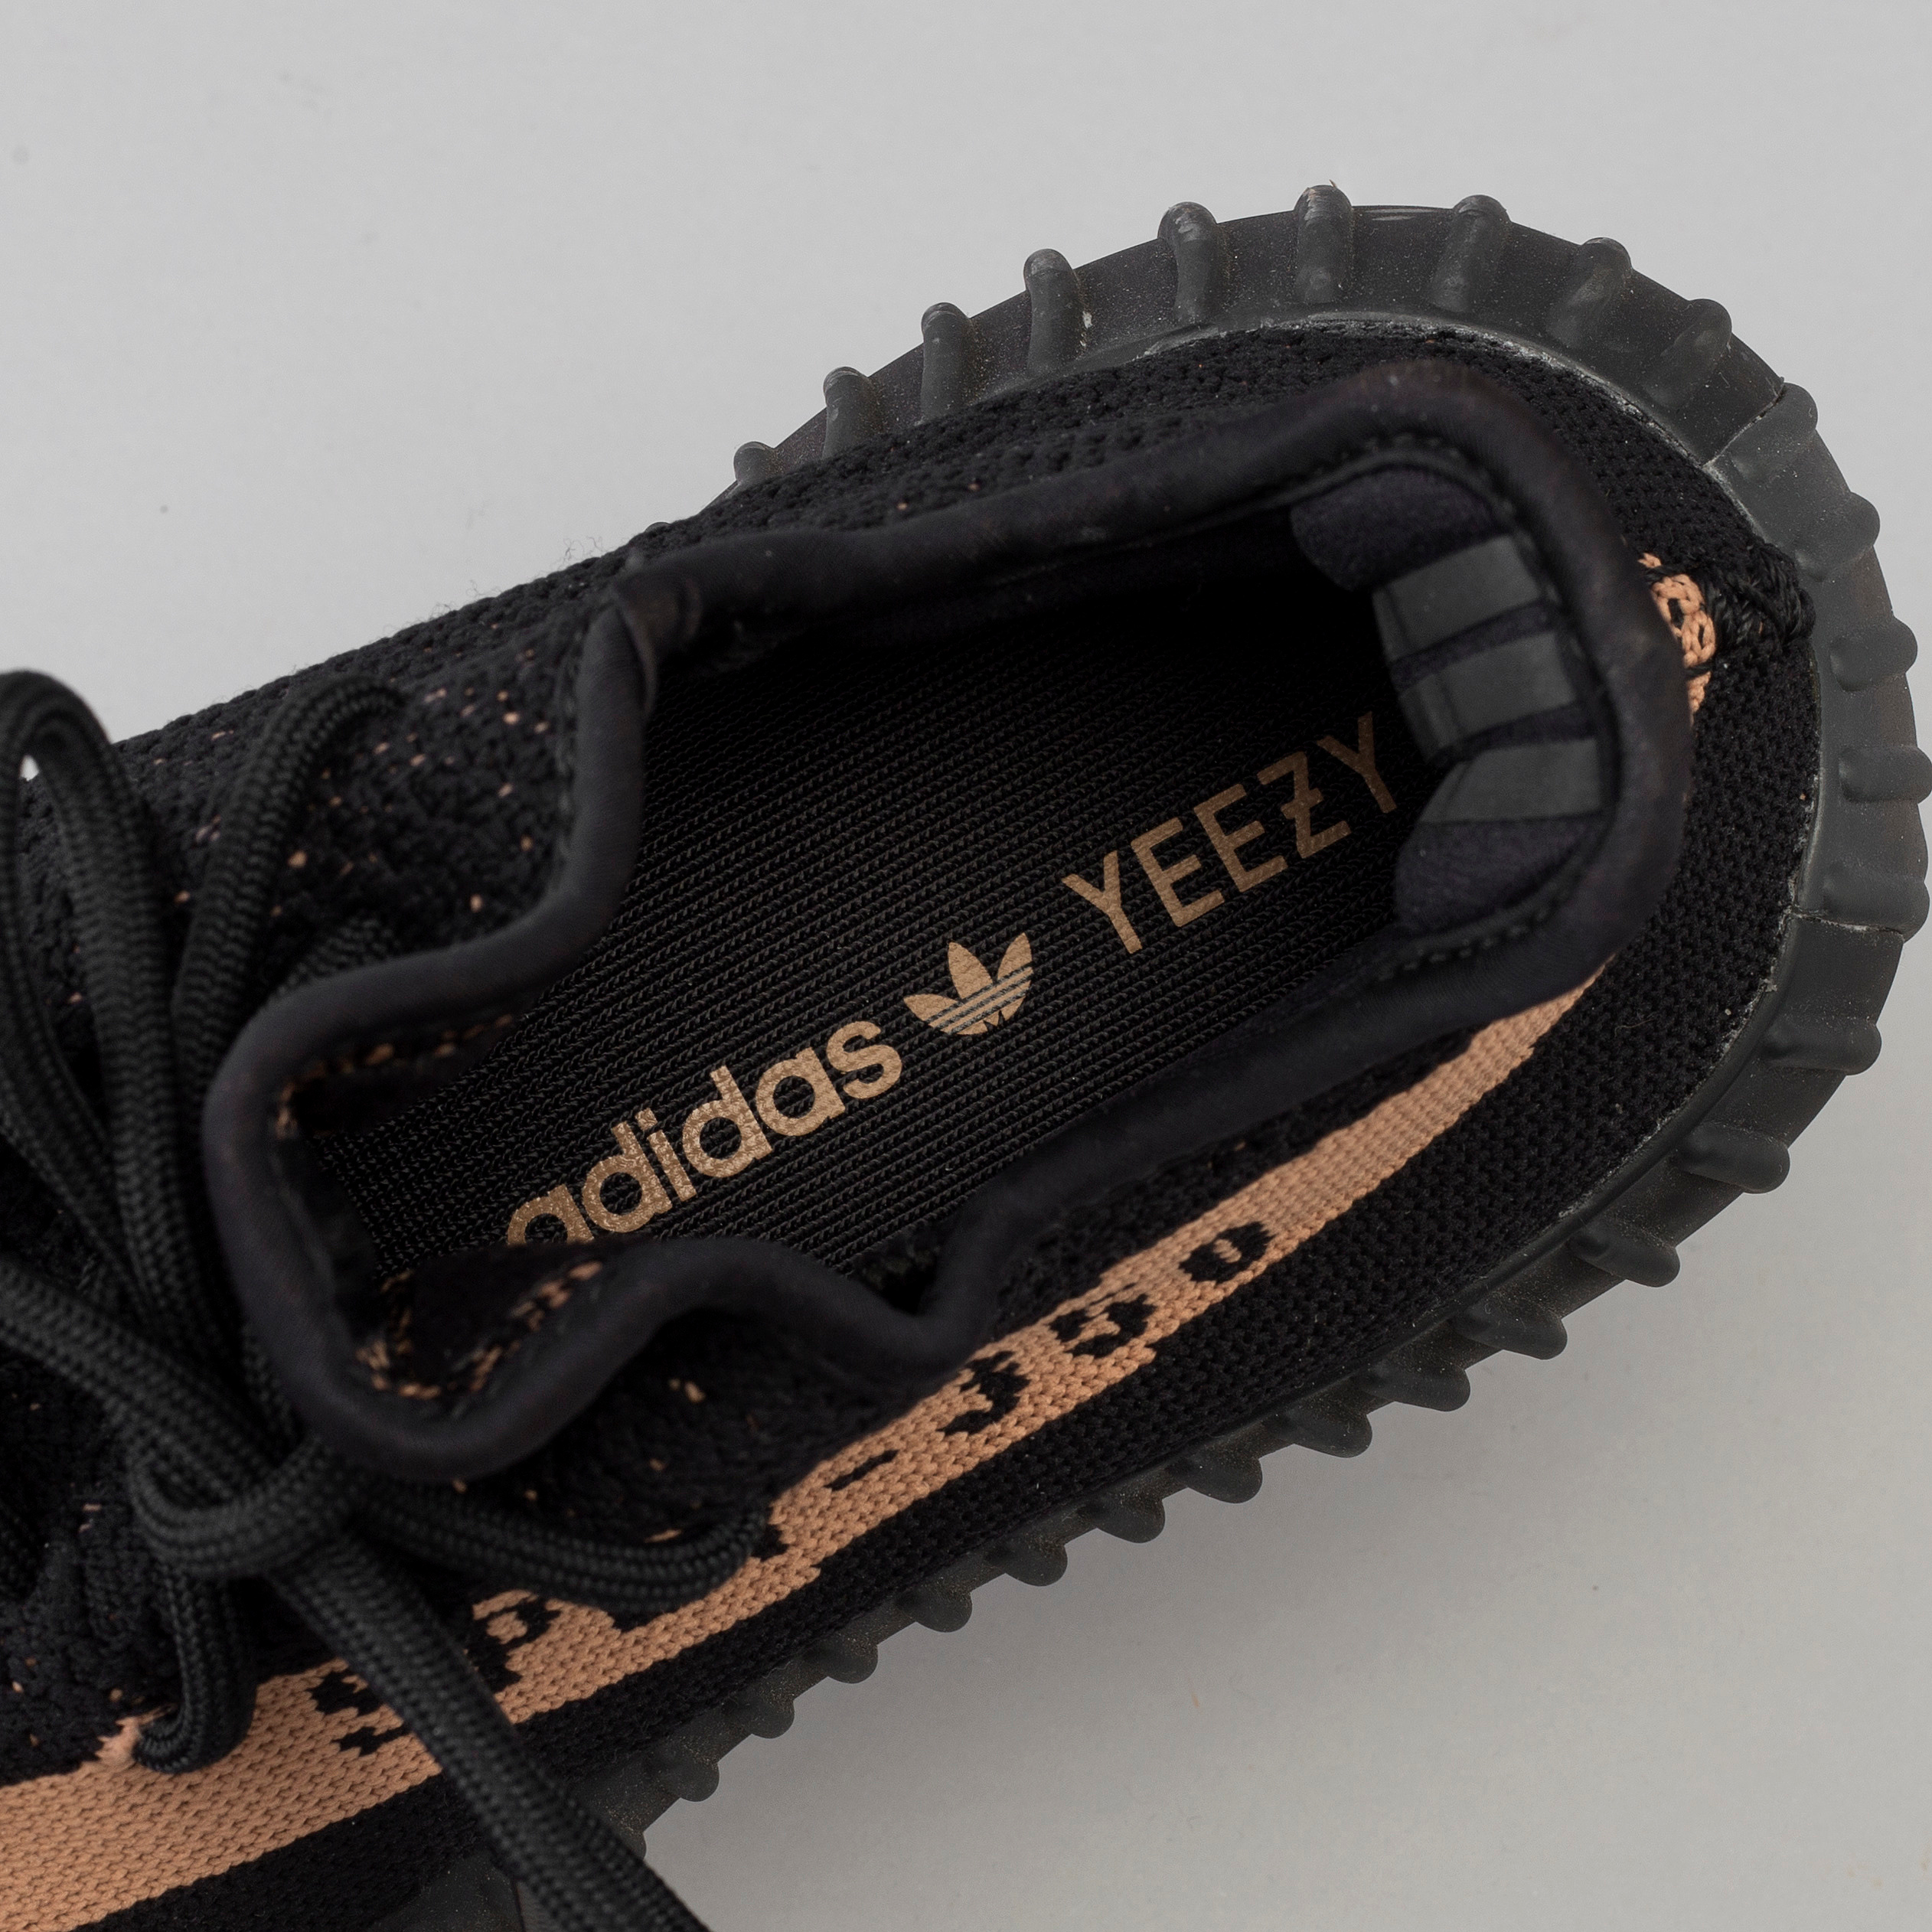 low priced bac1f 15ed4 Adidas Yeezy Boost 350 V2 core black copper sneakers ...